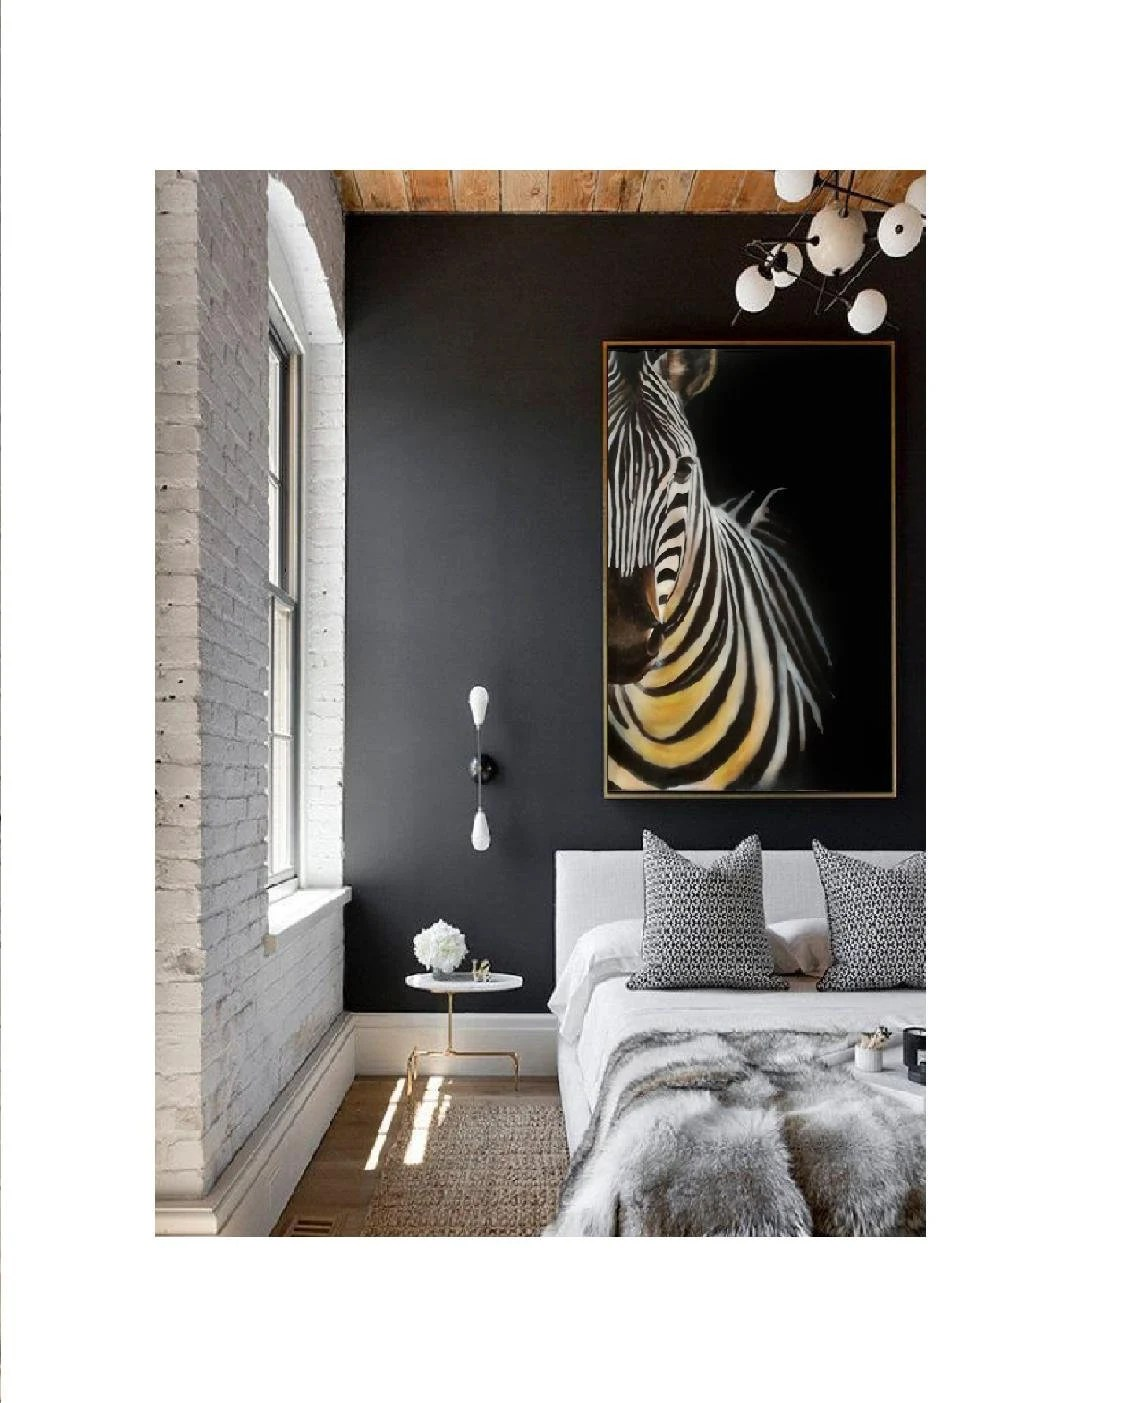 Zebra Bilder Auf Leinwand Animal Painting Acrylic Zebra Wall Art Big Painting Modern Dark Painting Black Painting Scandi Bedroom Modern Side Table Dark Blue Wall